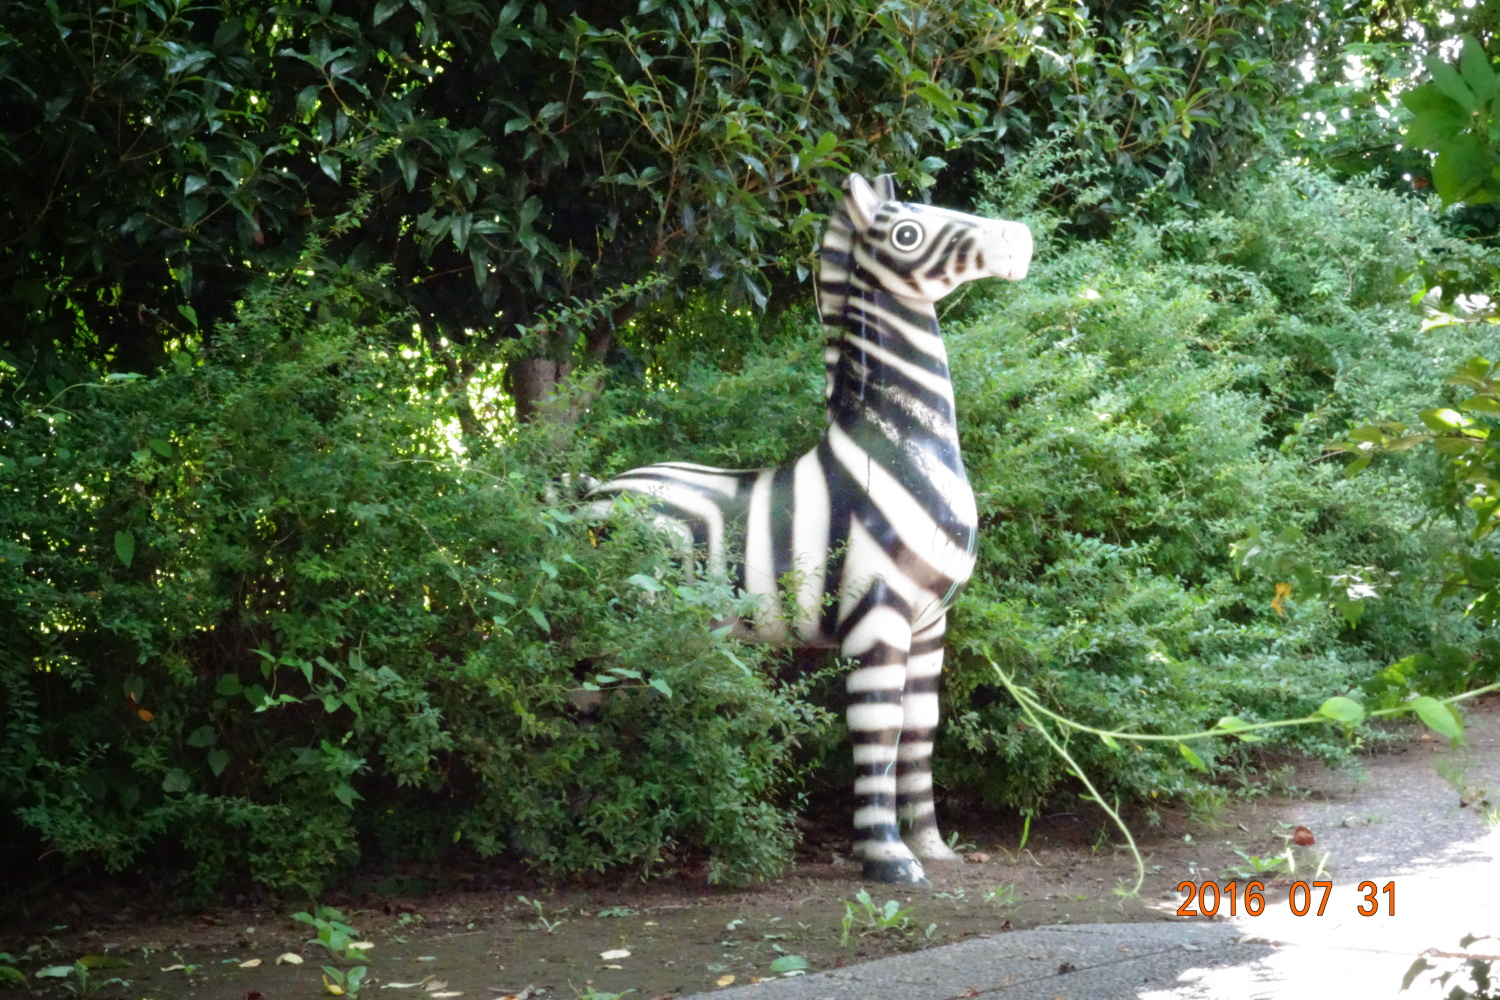 It is zebra of Nakazato green tract of land.